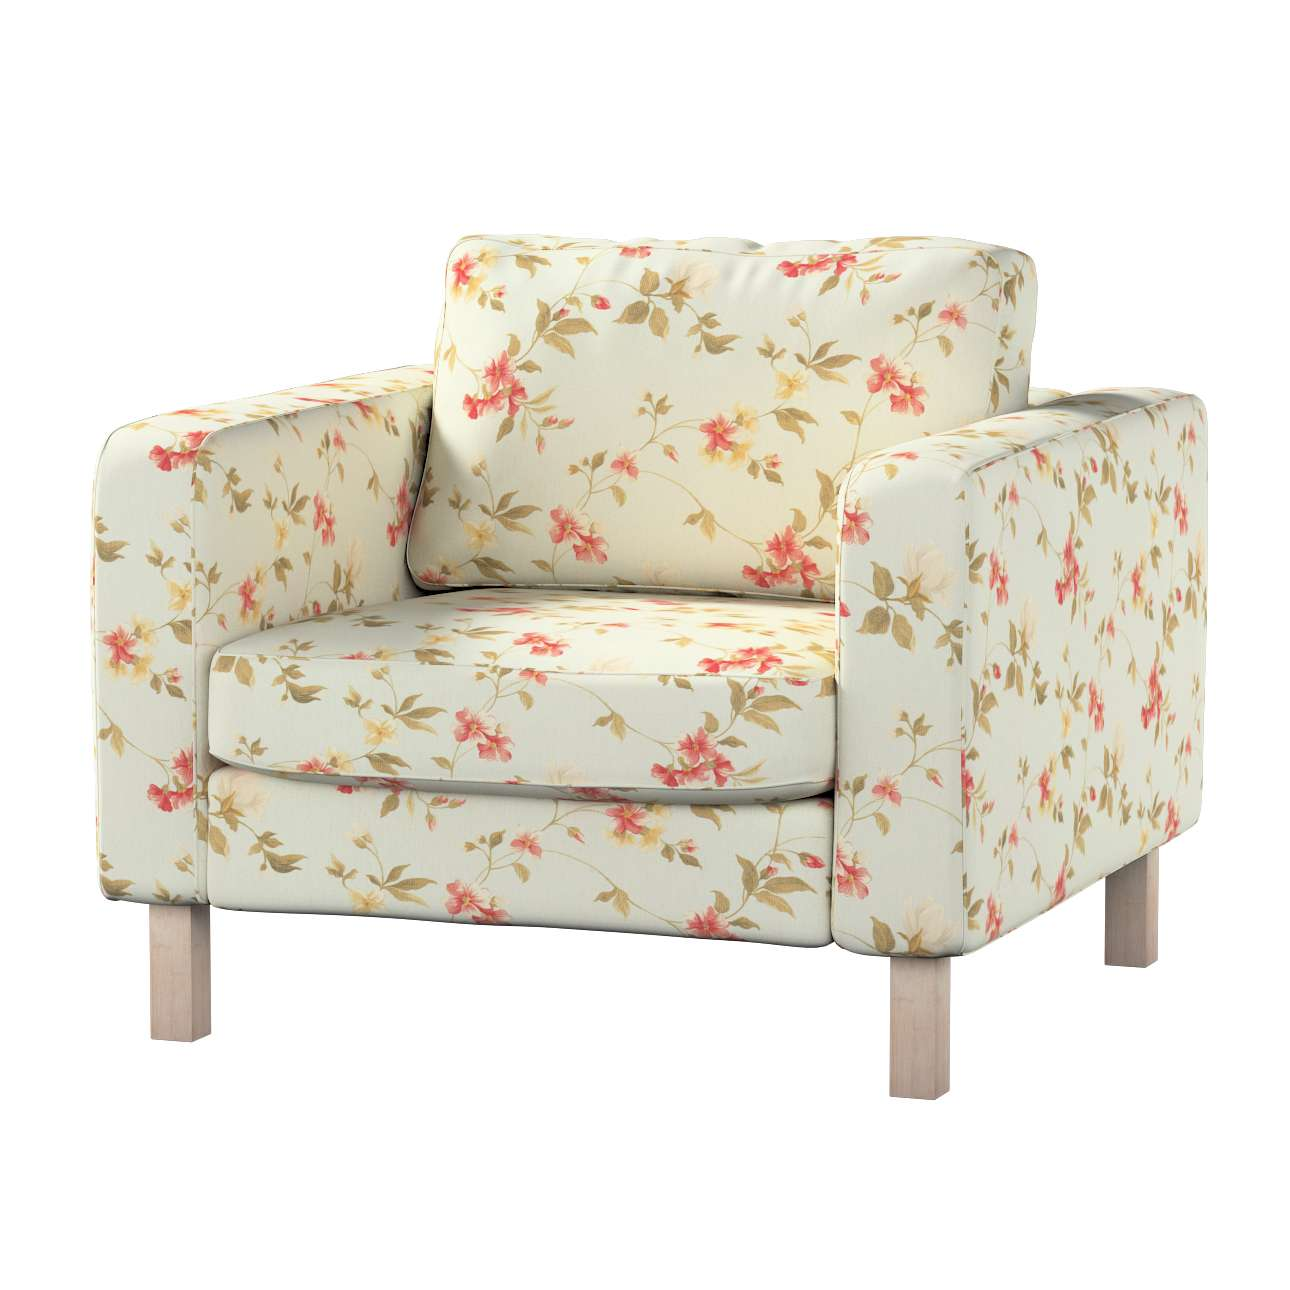 Karlstad armchair cover Karlstad armchair cover in collection Londres, fabric: 124-65